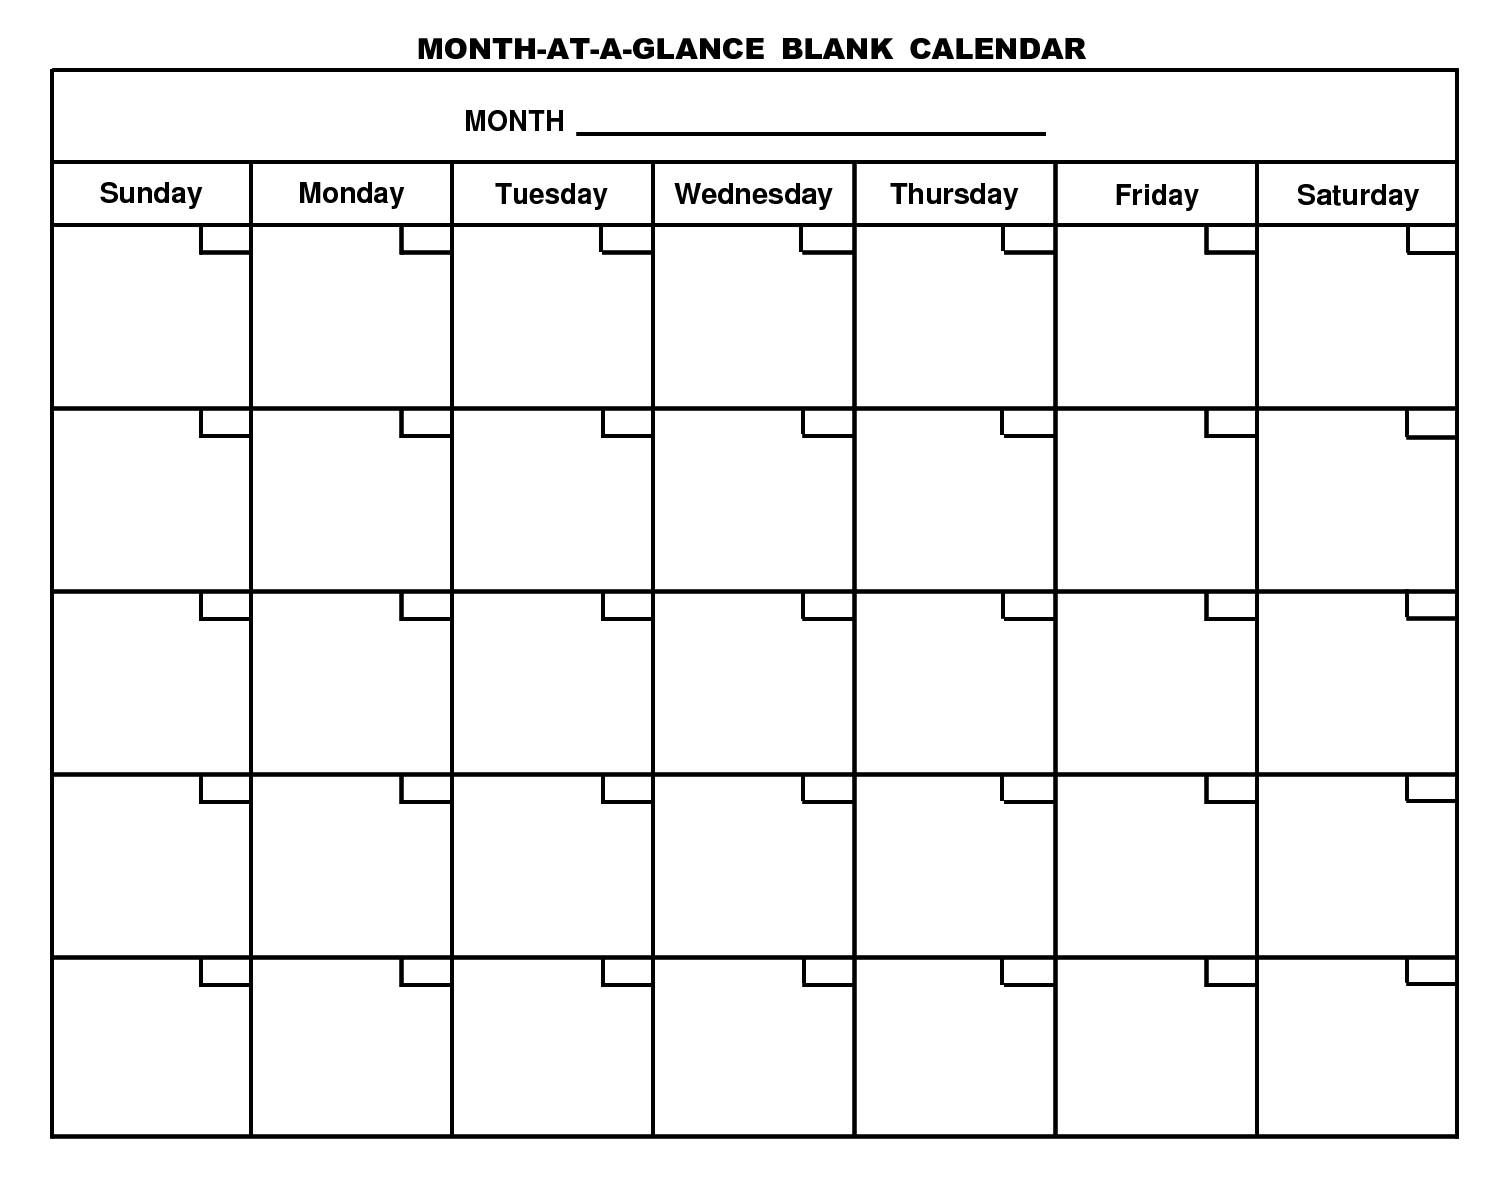 blank monthly calendars - Yahoo Search Results | UMW | Pinterest ...